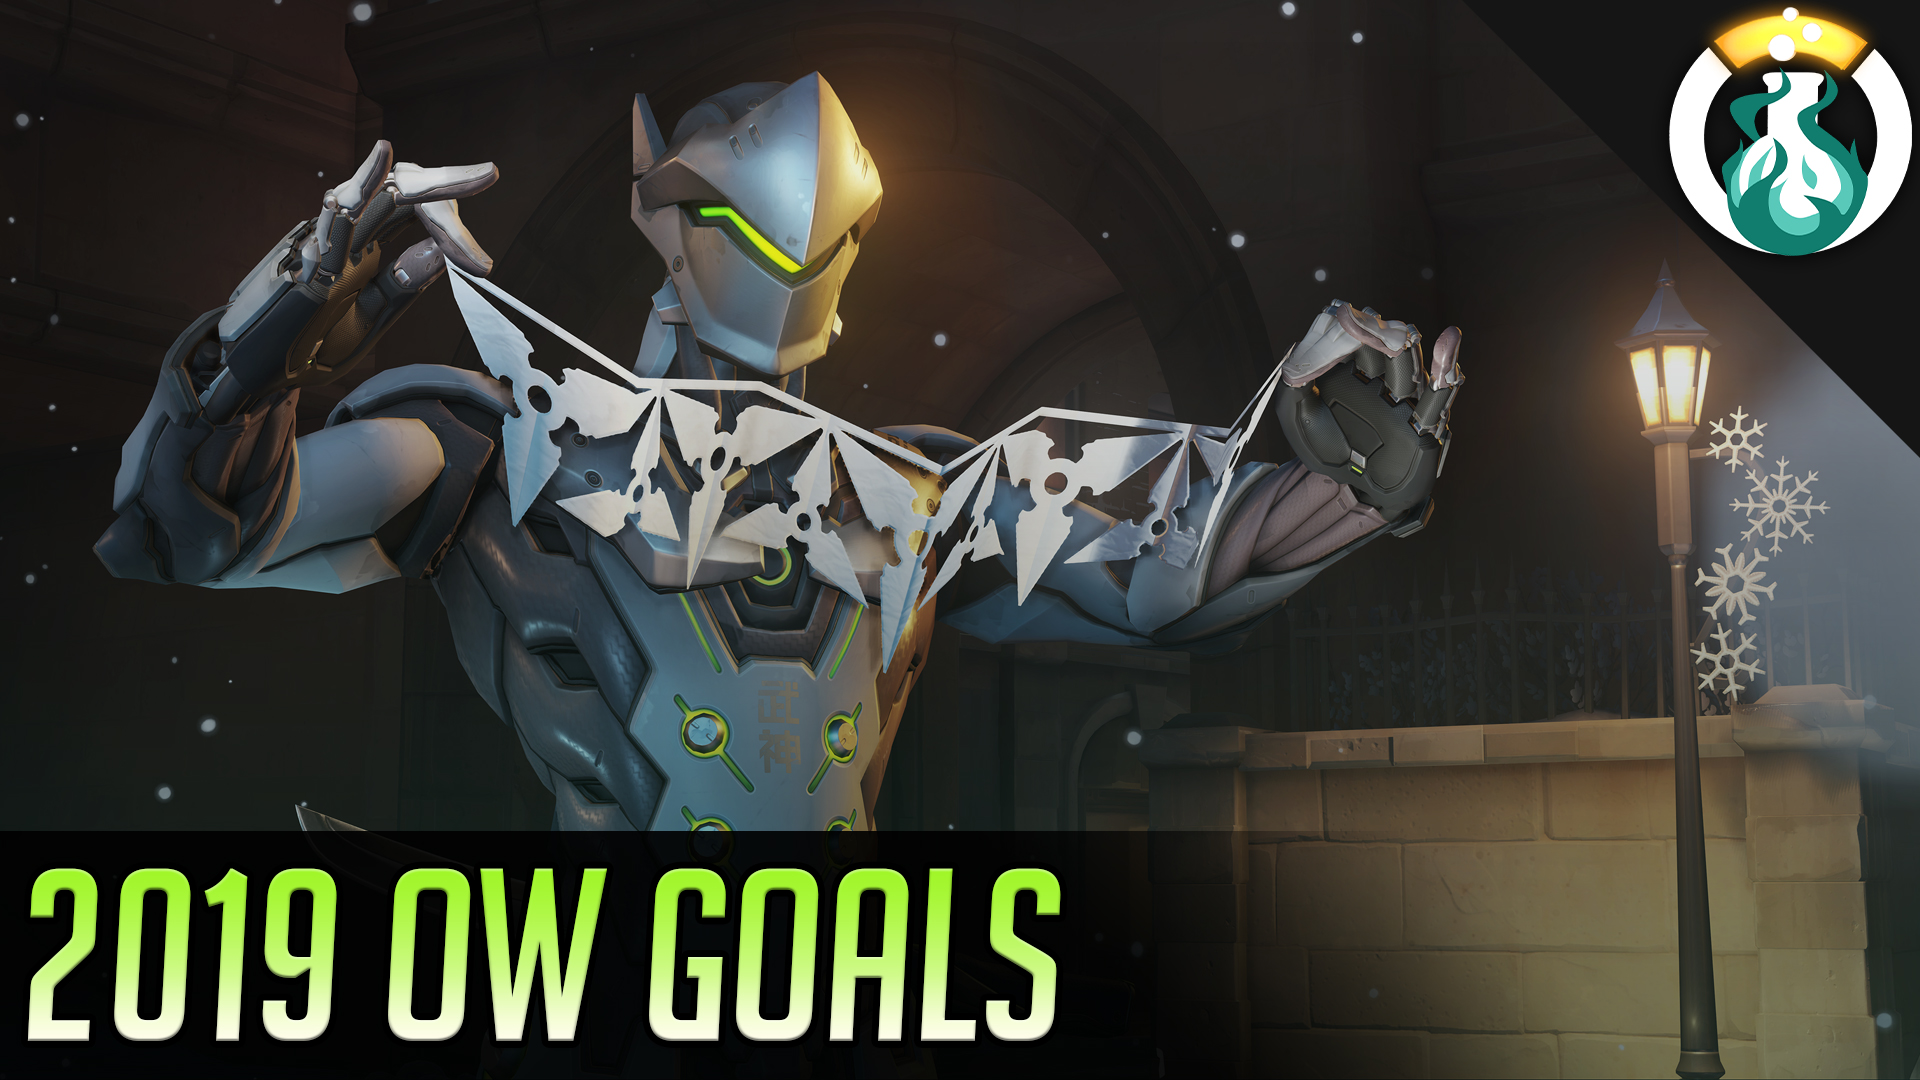 Omnic-Lab-YouTube-Card-133-2019goals.jpg